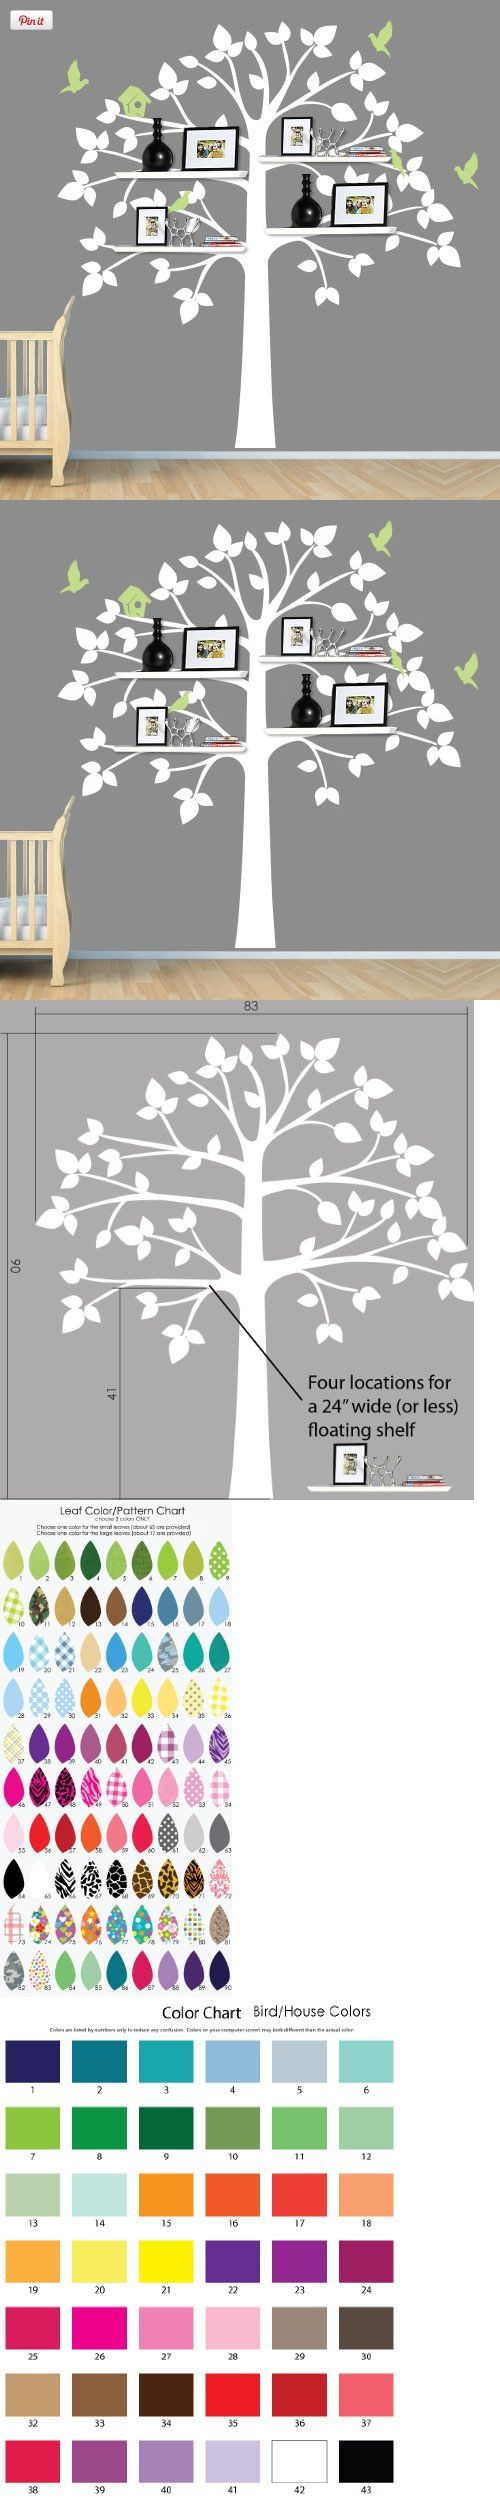 Childrens Wall Decals, White Tree Wall Decal, Perfect for Shelf or Shelving, If you want custom leaf choices then put that information in the gift note area when checking out or email me your choices. You can choose 2 leaf colors and 1 color for the birds/birdhouse. These wall..., #Baby, #Wall Stickers & Murals